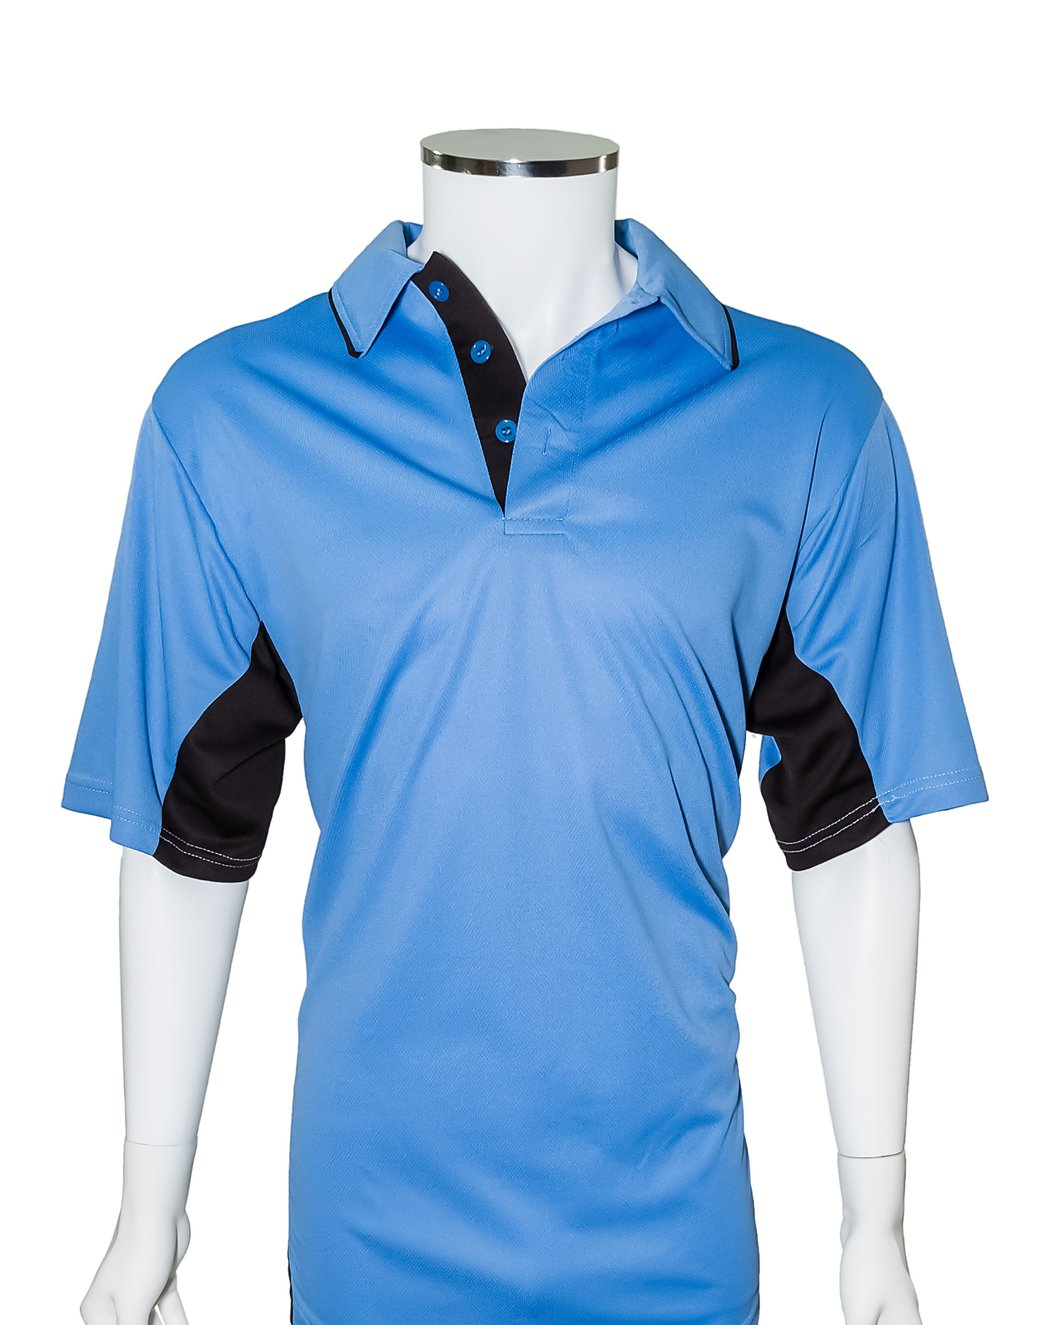 SWAC Current Major League Replica Umpire Shirt - Sky Blue with Black Side Panels